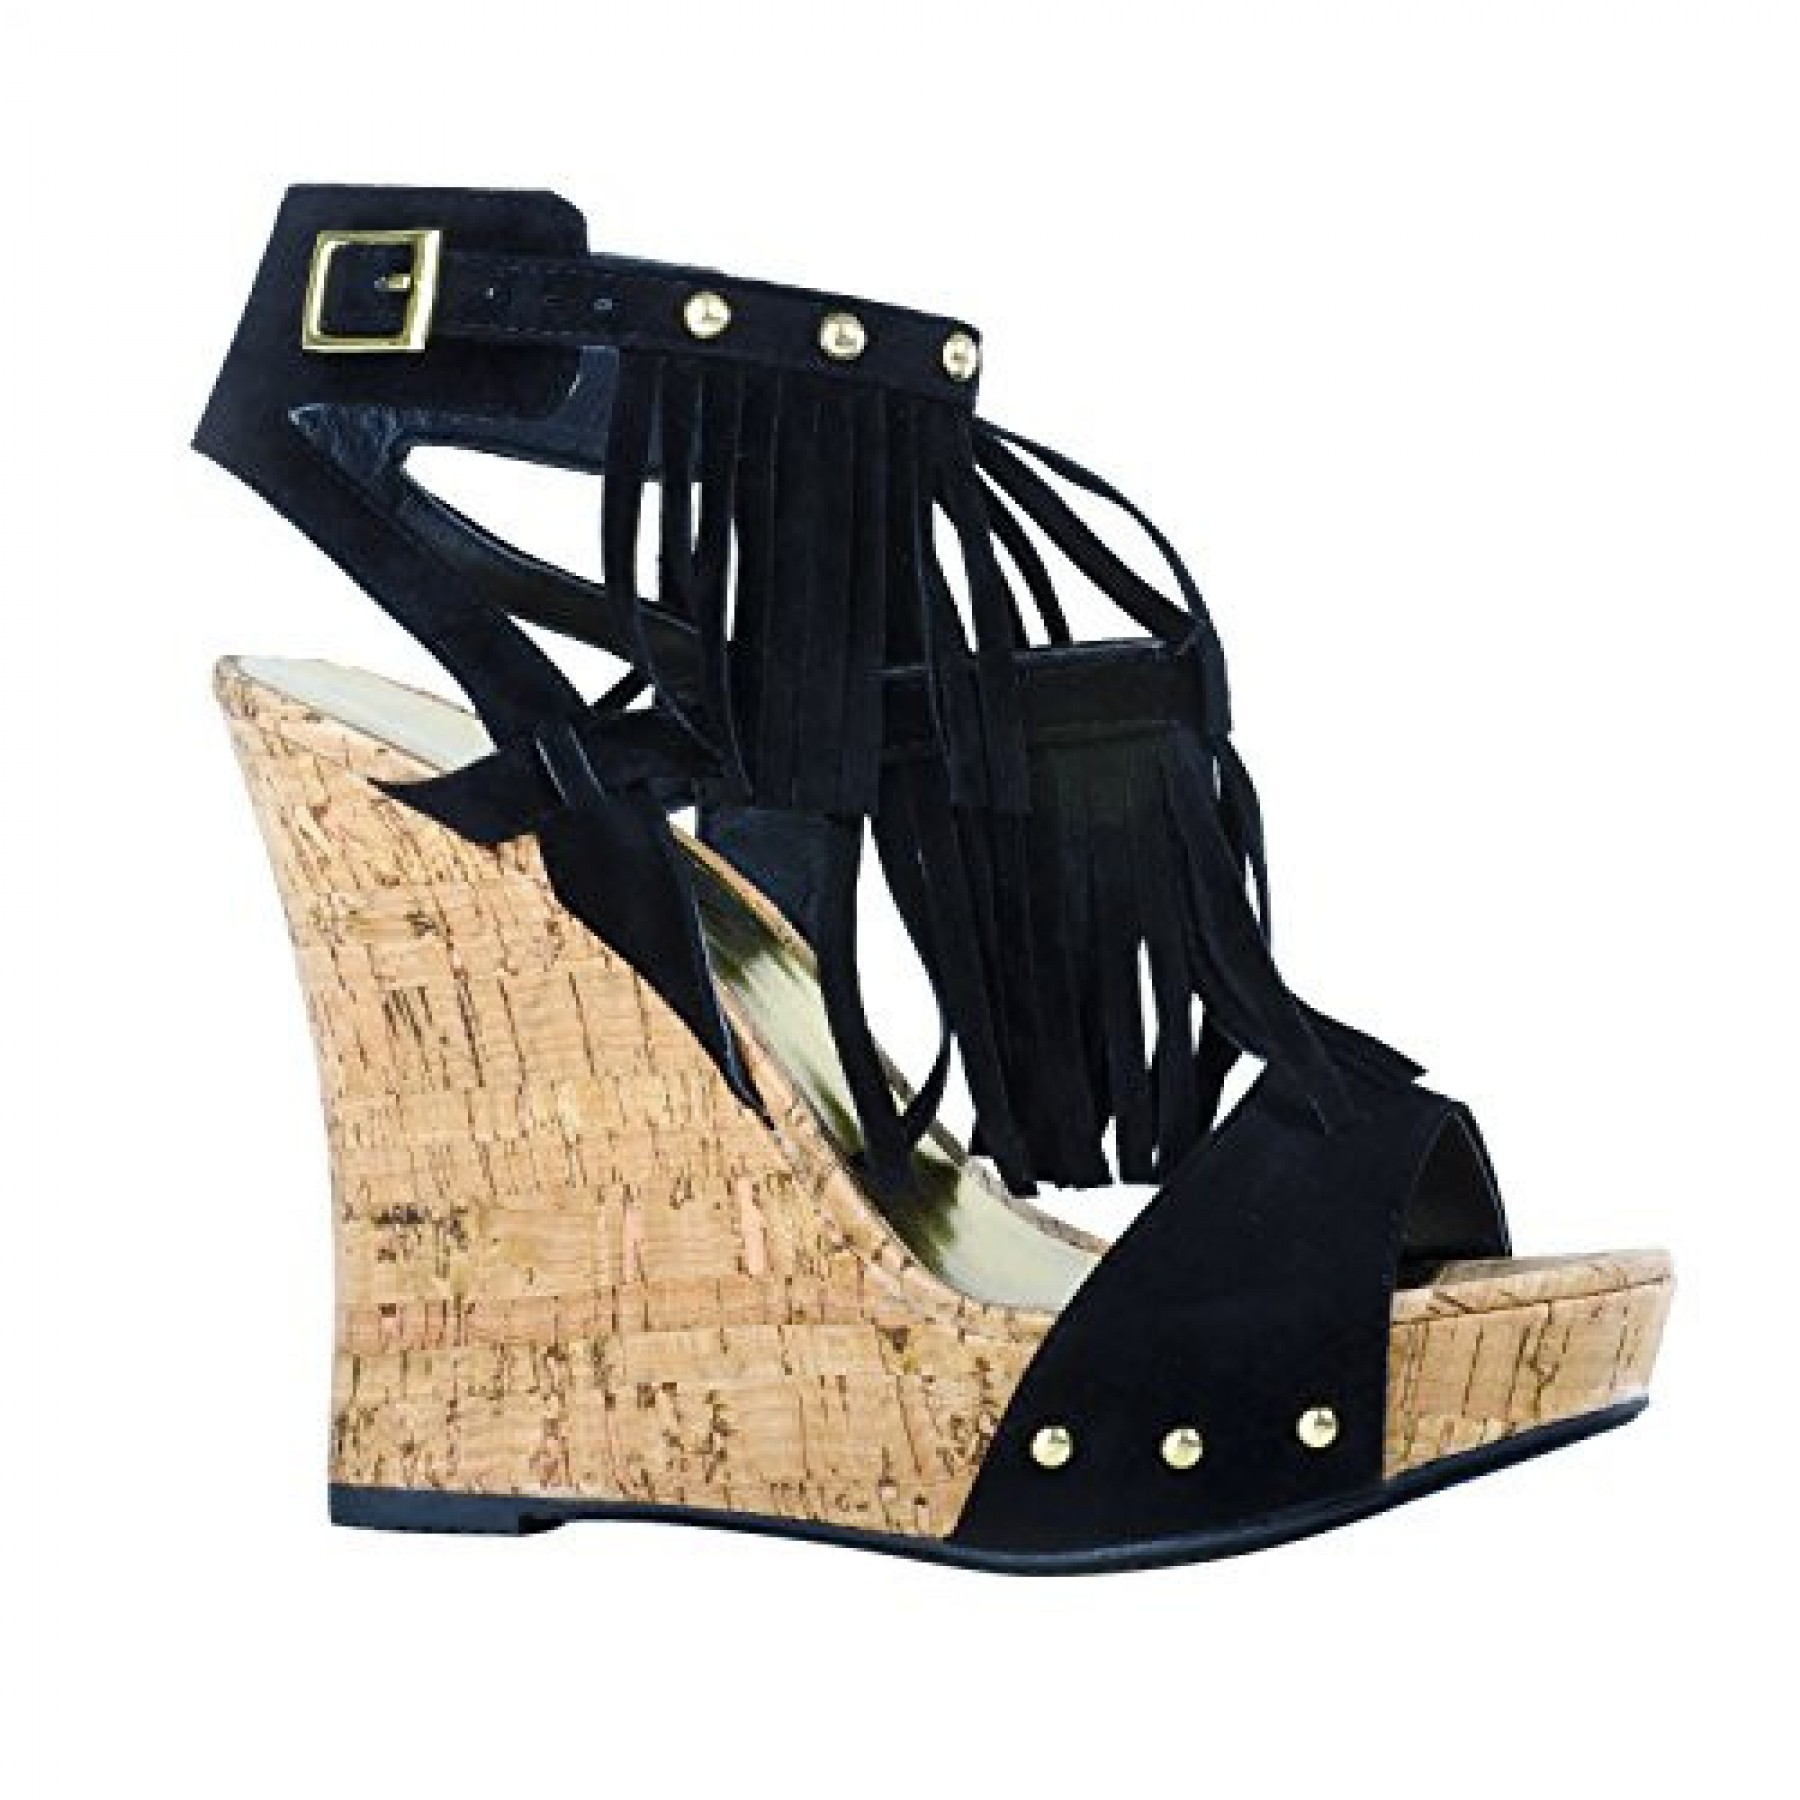 Women's Black Meekaa Fringed Manmade 5-inch Wedge Sandal with Studded Straps